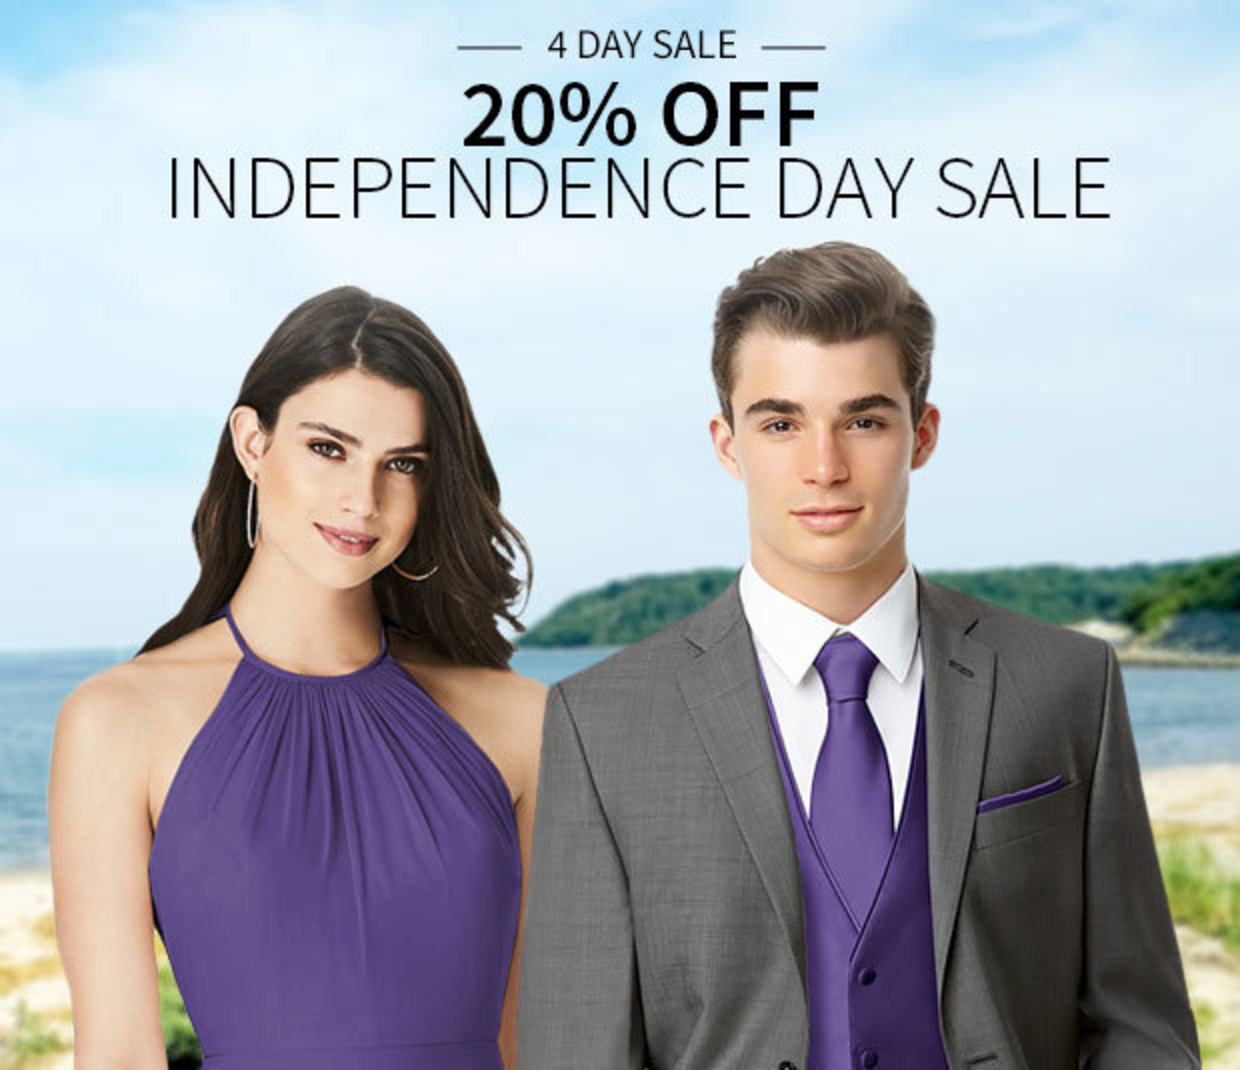 20% Off - 4 Day Sale